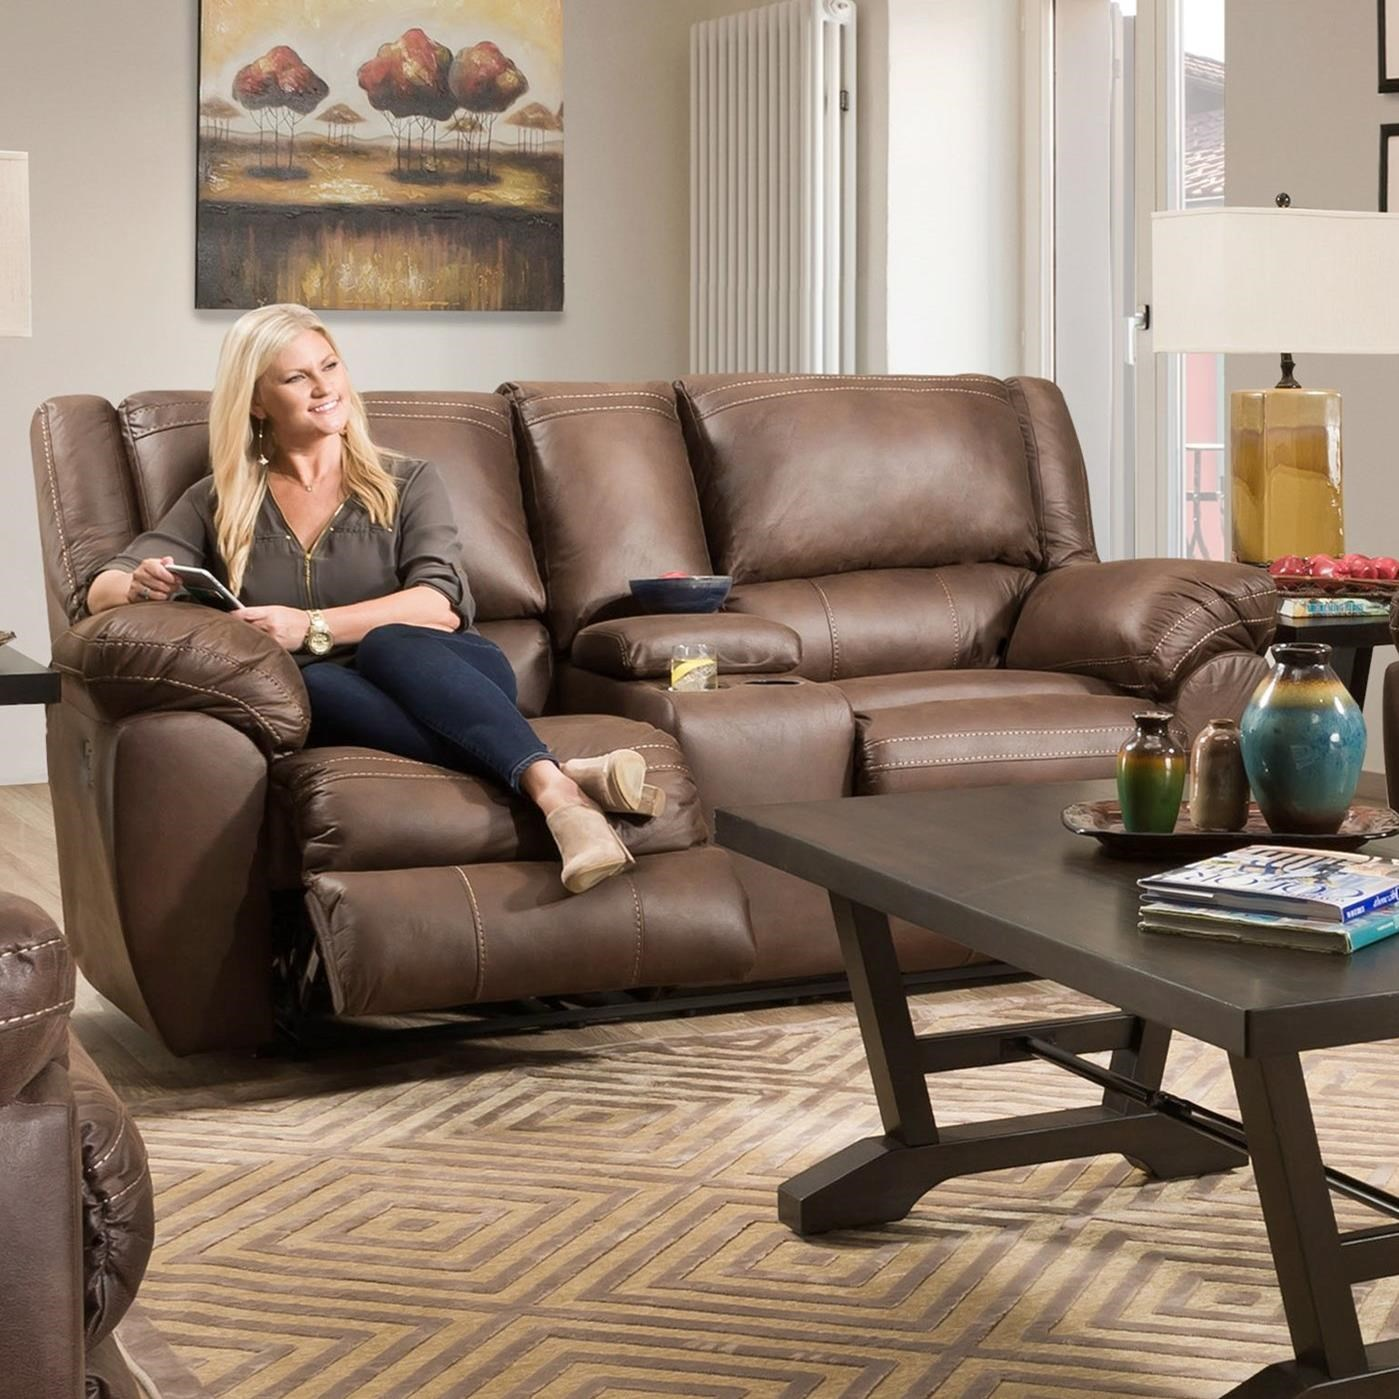 50433BR Power Double Motion Console Loveseat by United Furniture Industries at Dream Home Interiors